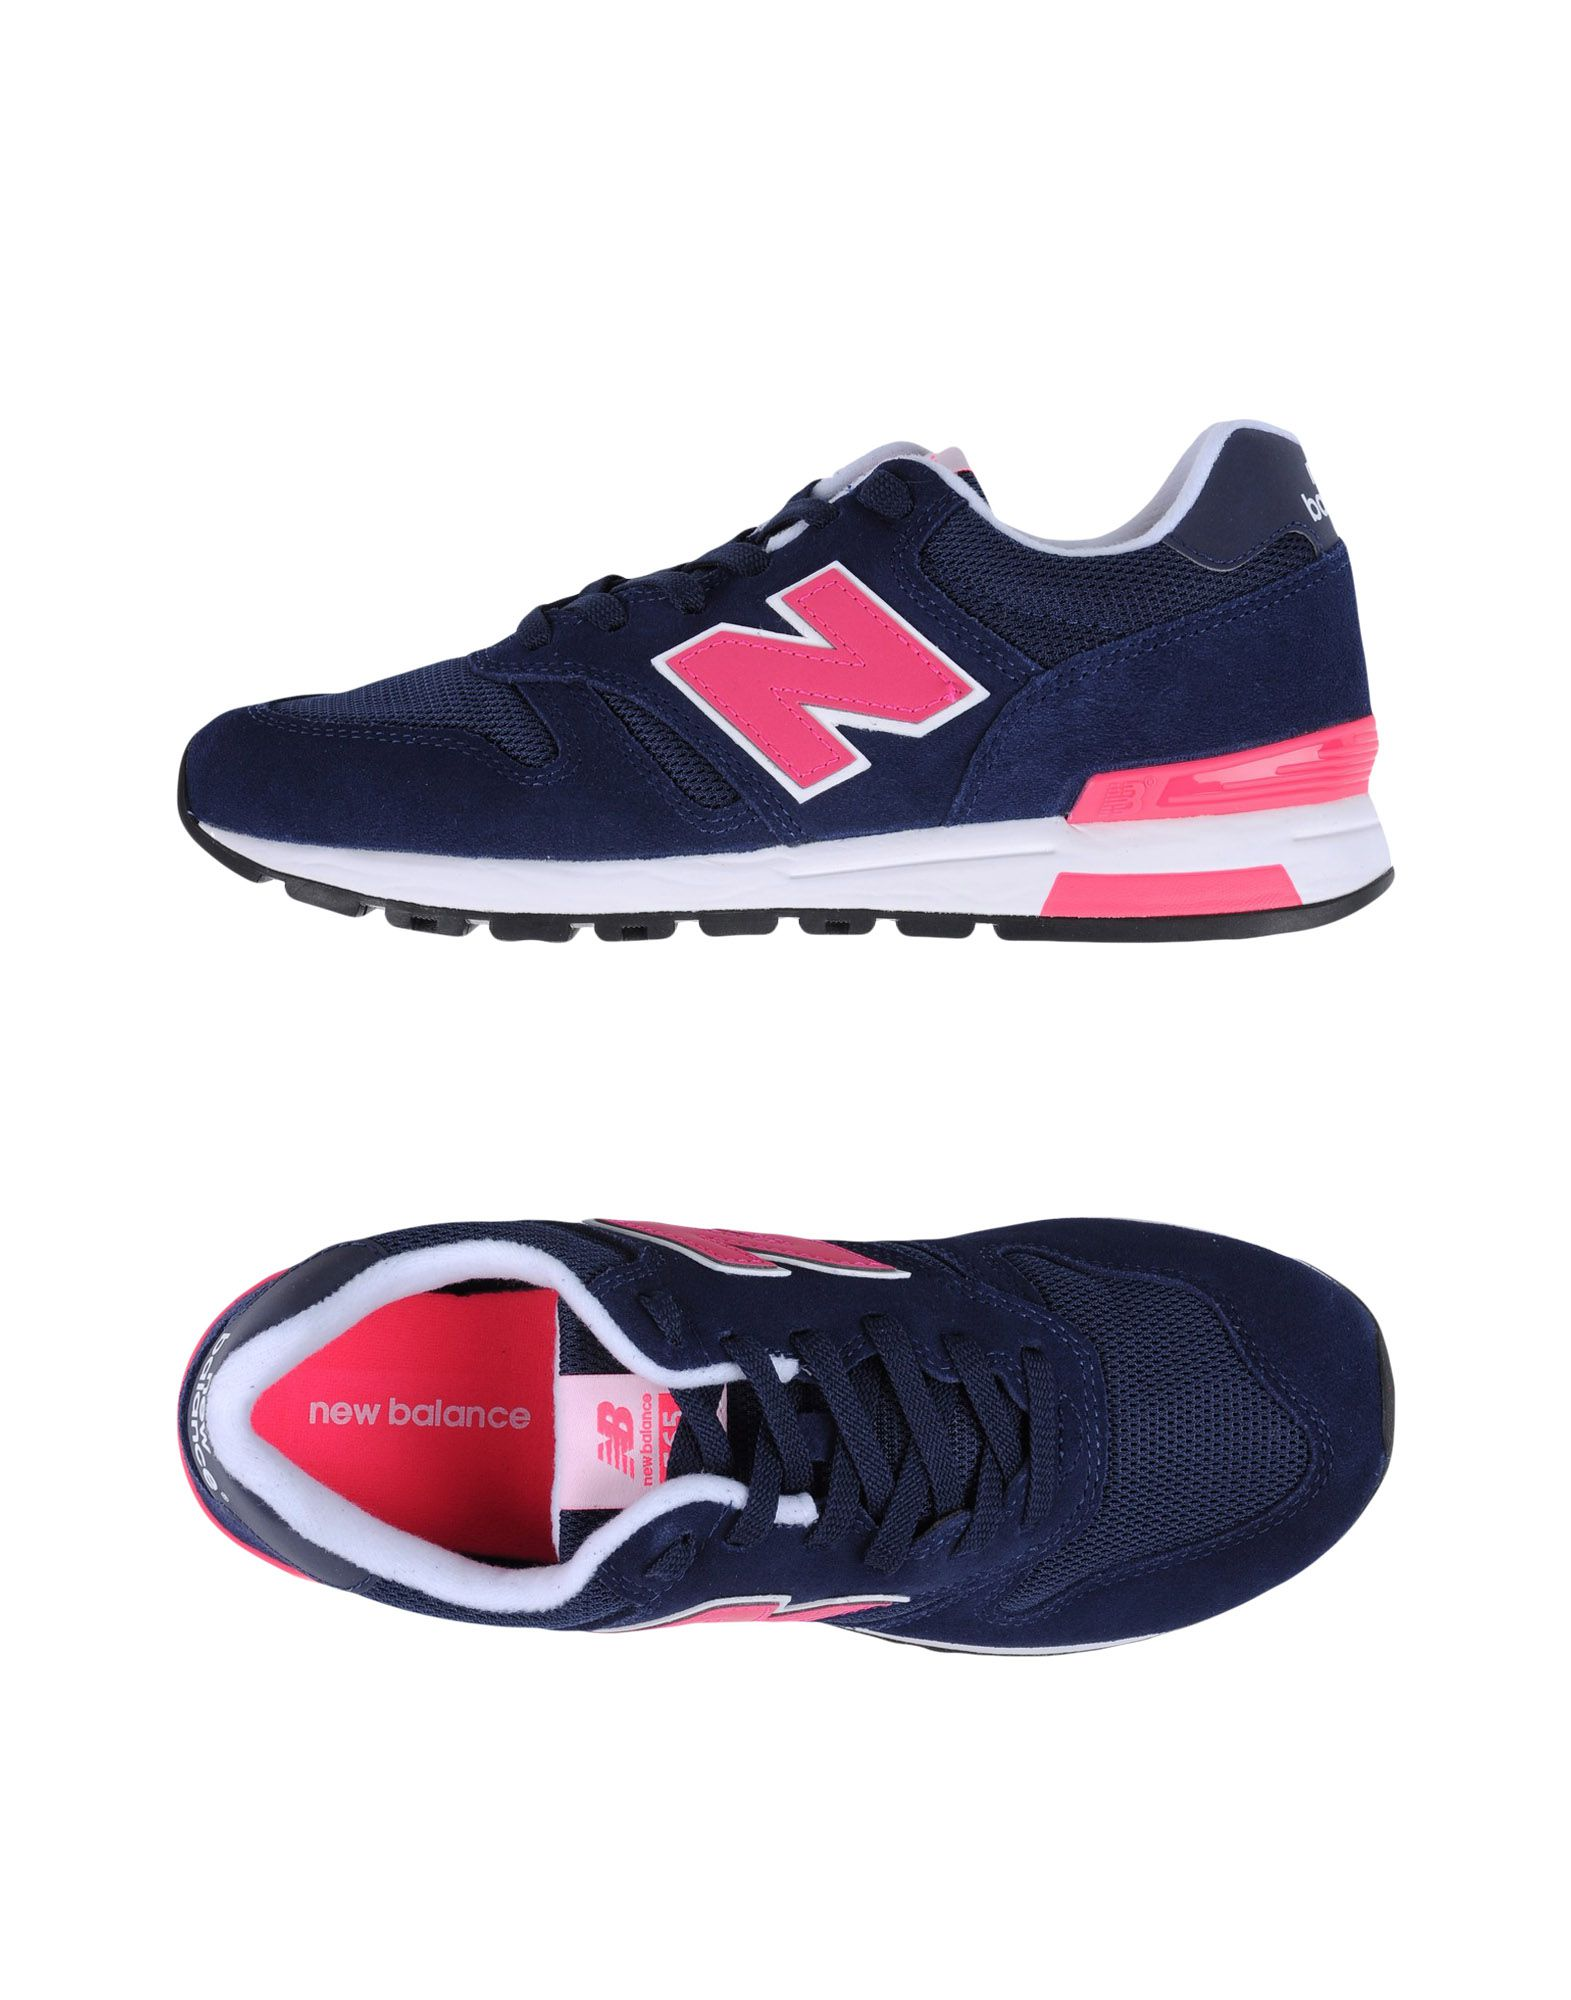 Sneakers New Balance 565 Suede Mesh Seasonal - Femme - Sneakers New Balance sur